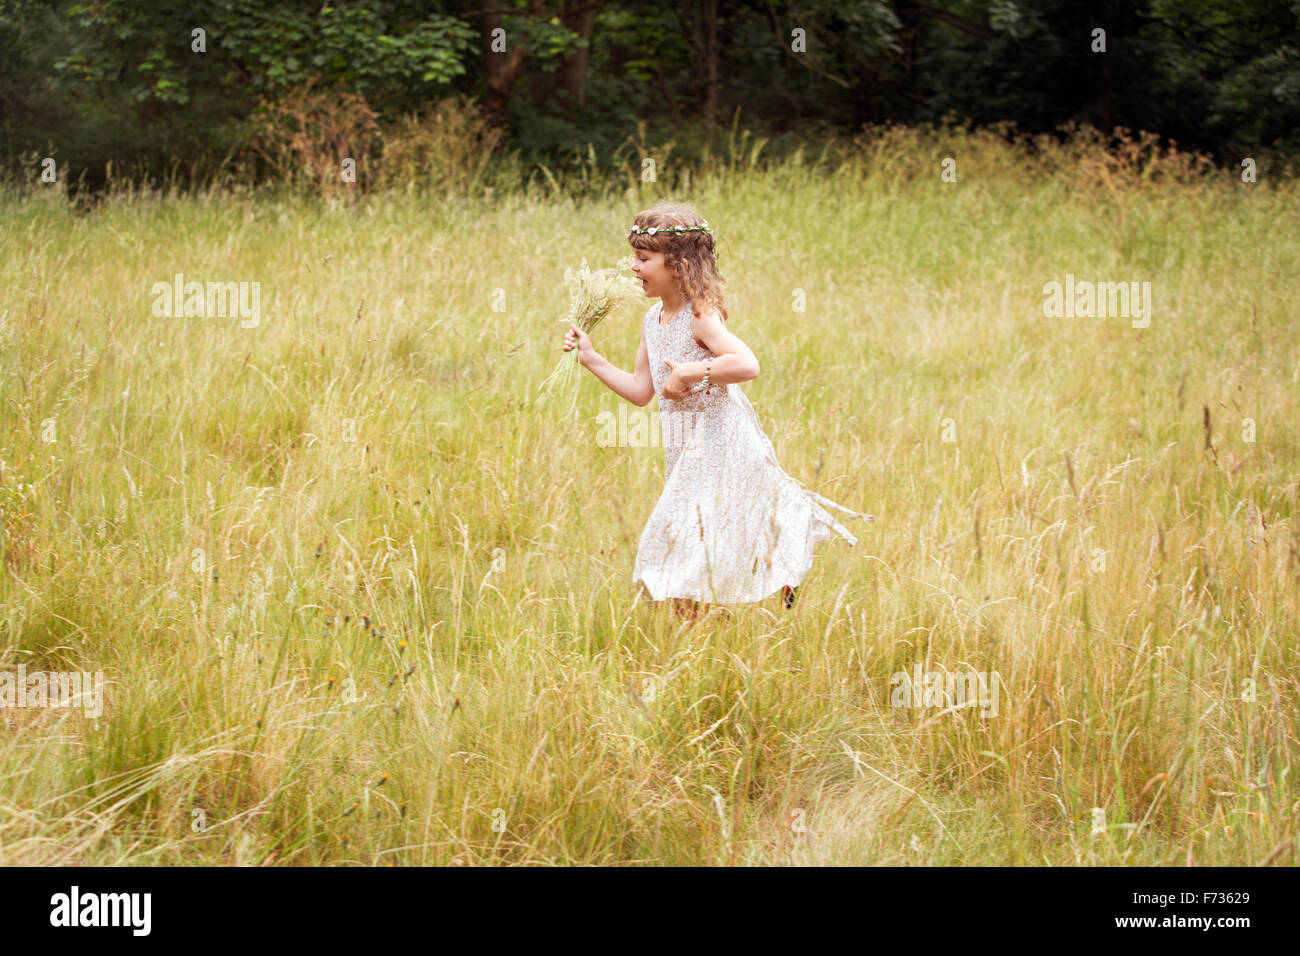 Young girl with flowers in her hair picking wild flowers in a meadow. Stock Photo